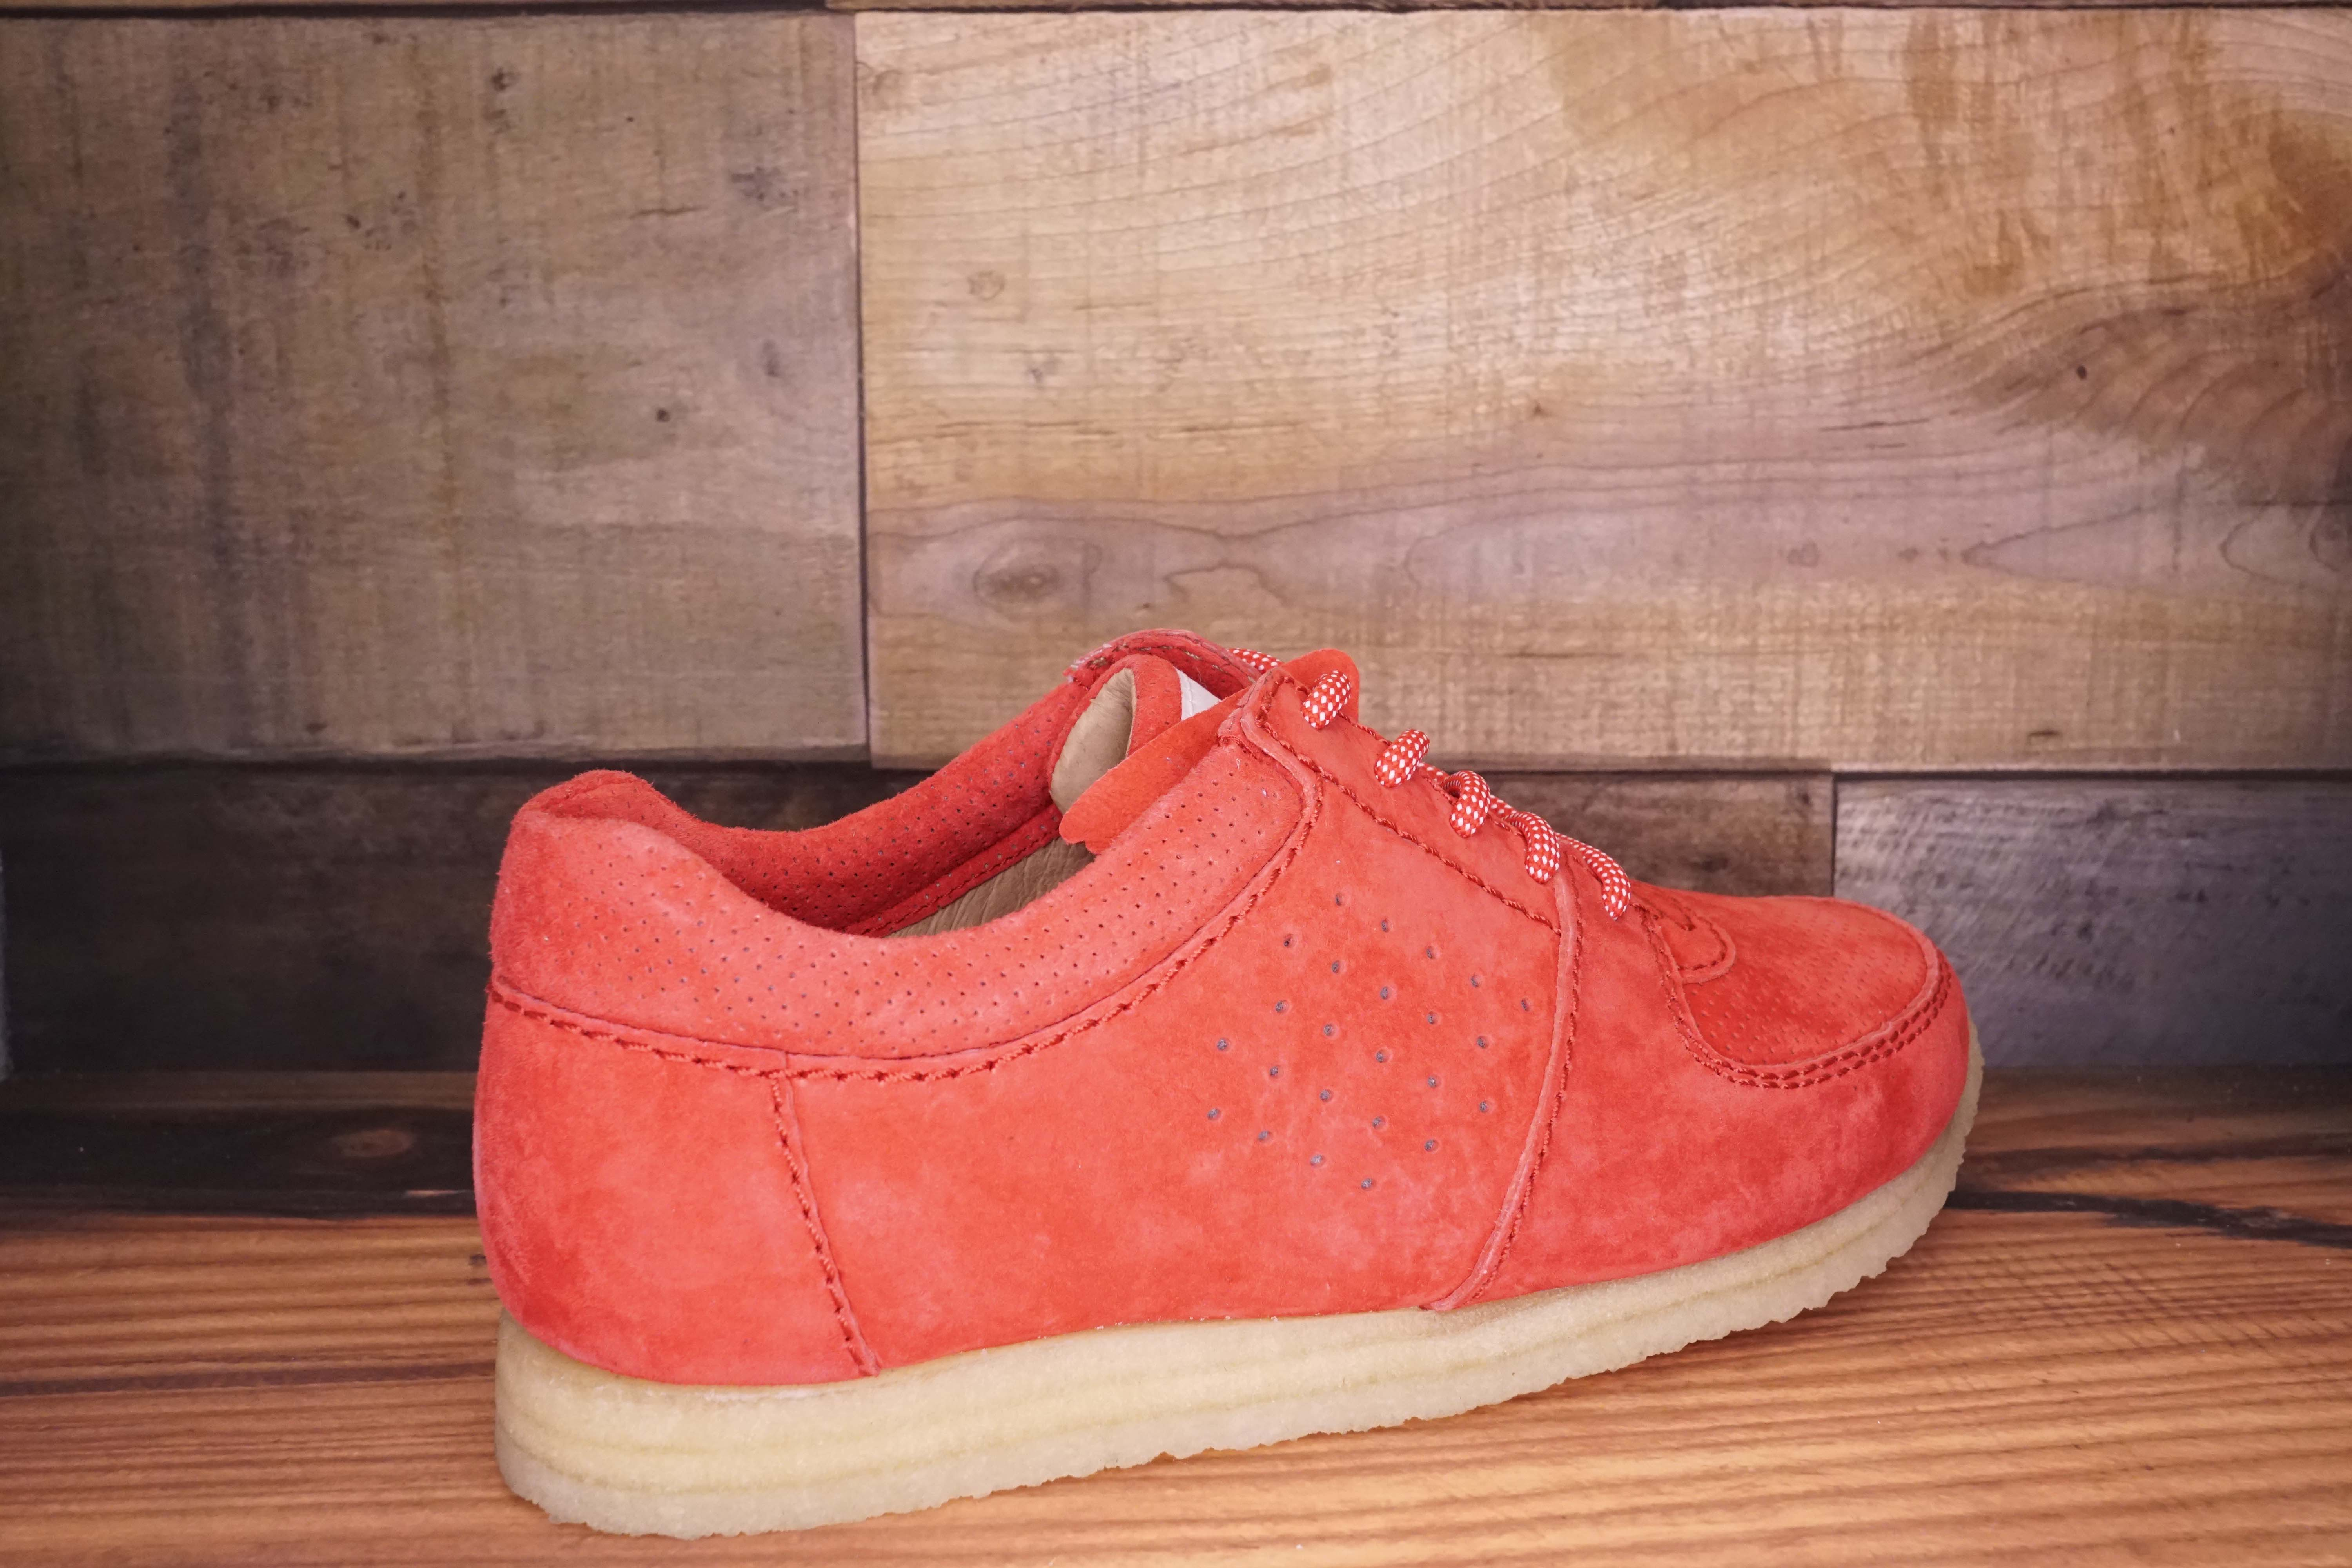 Clarks-Kildare-X-Ronnie-F-SUPER-RED-Size-7.5-New-with-Original-Box_2056C.jpg